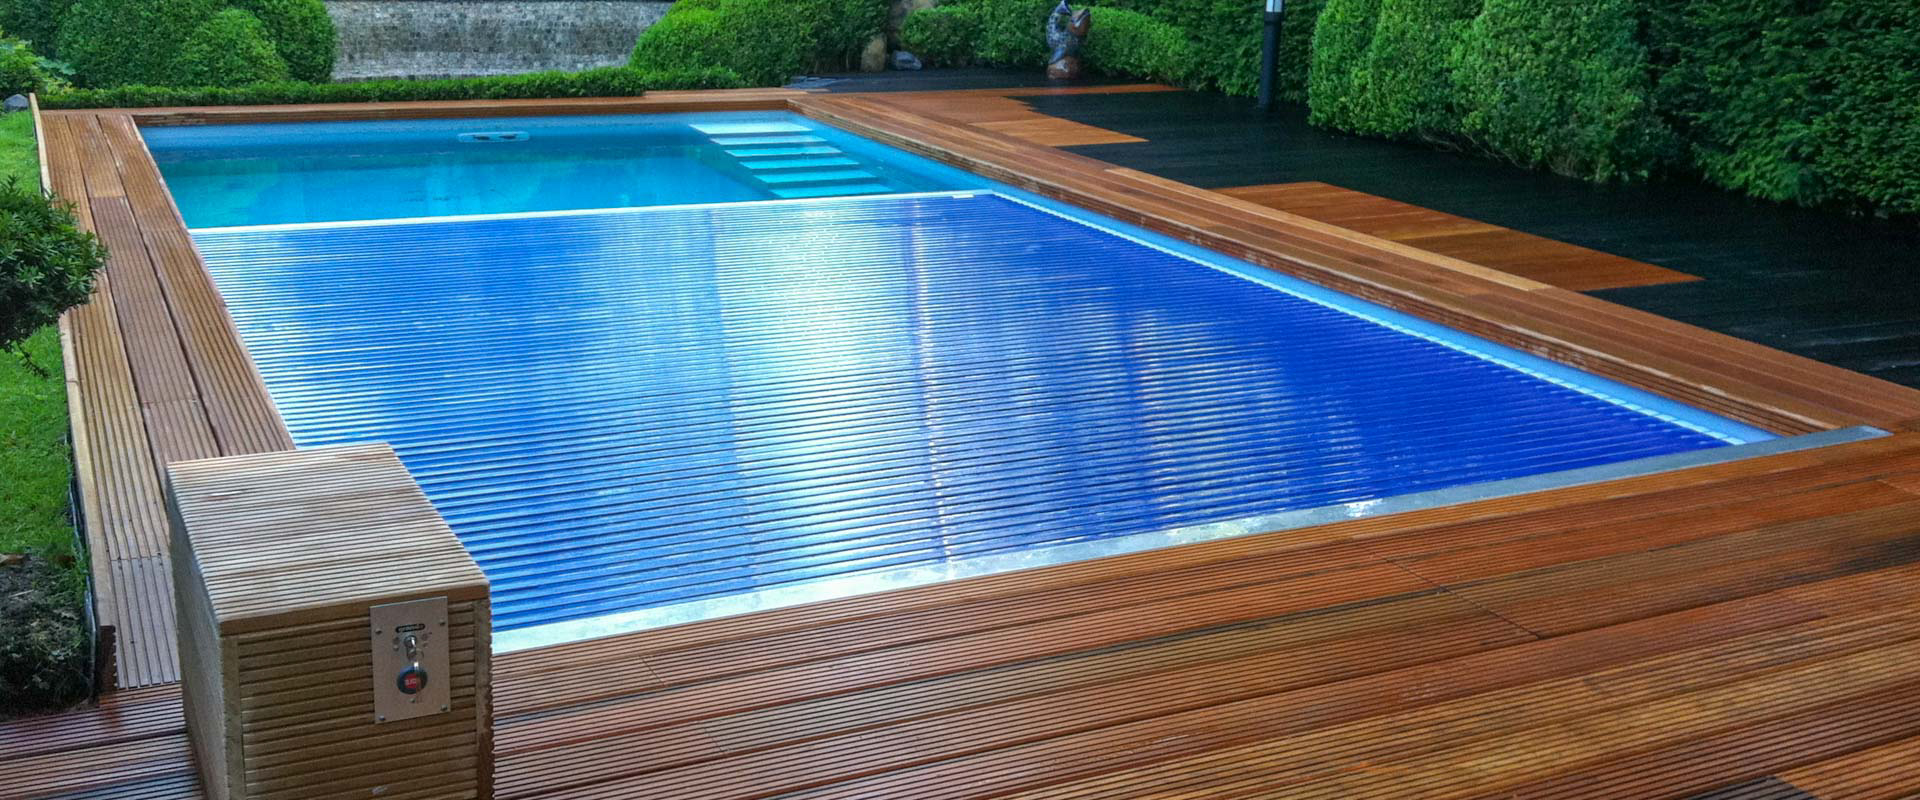 Automatic Rigid Pool Cover System Type Ibs 9 Grando